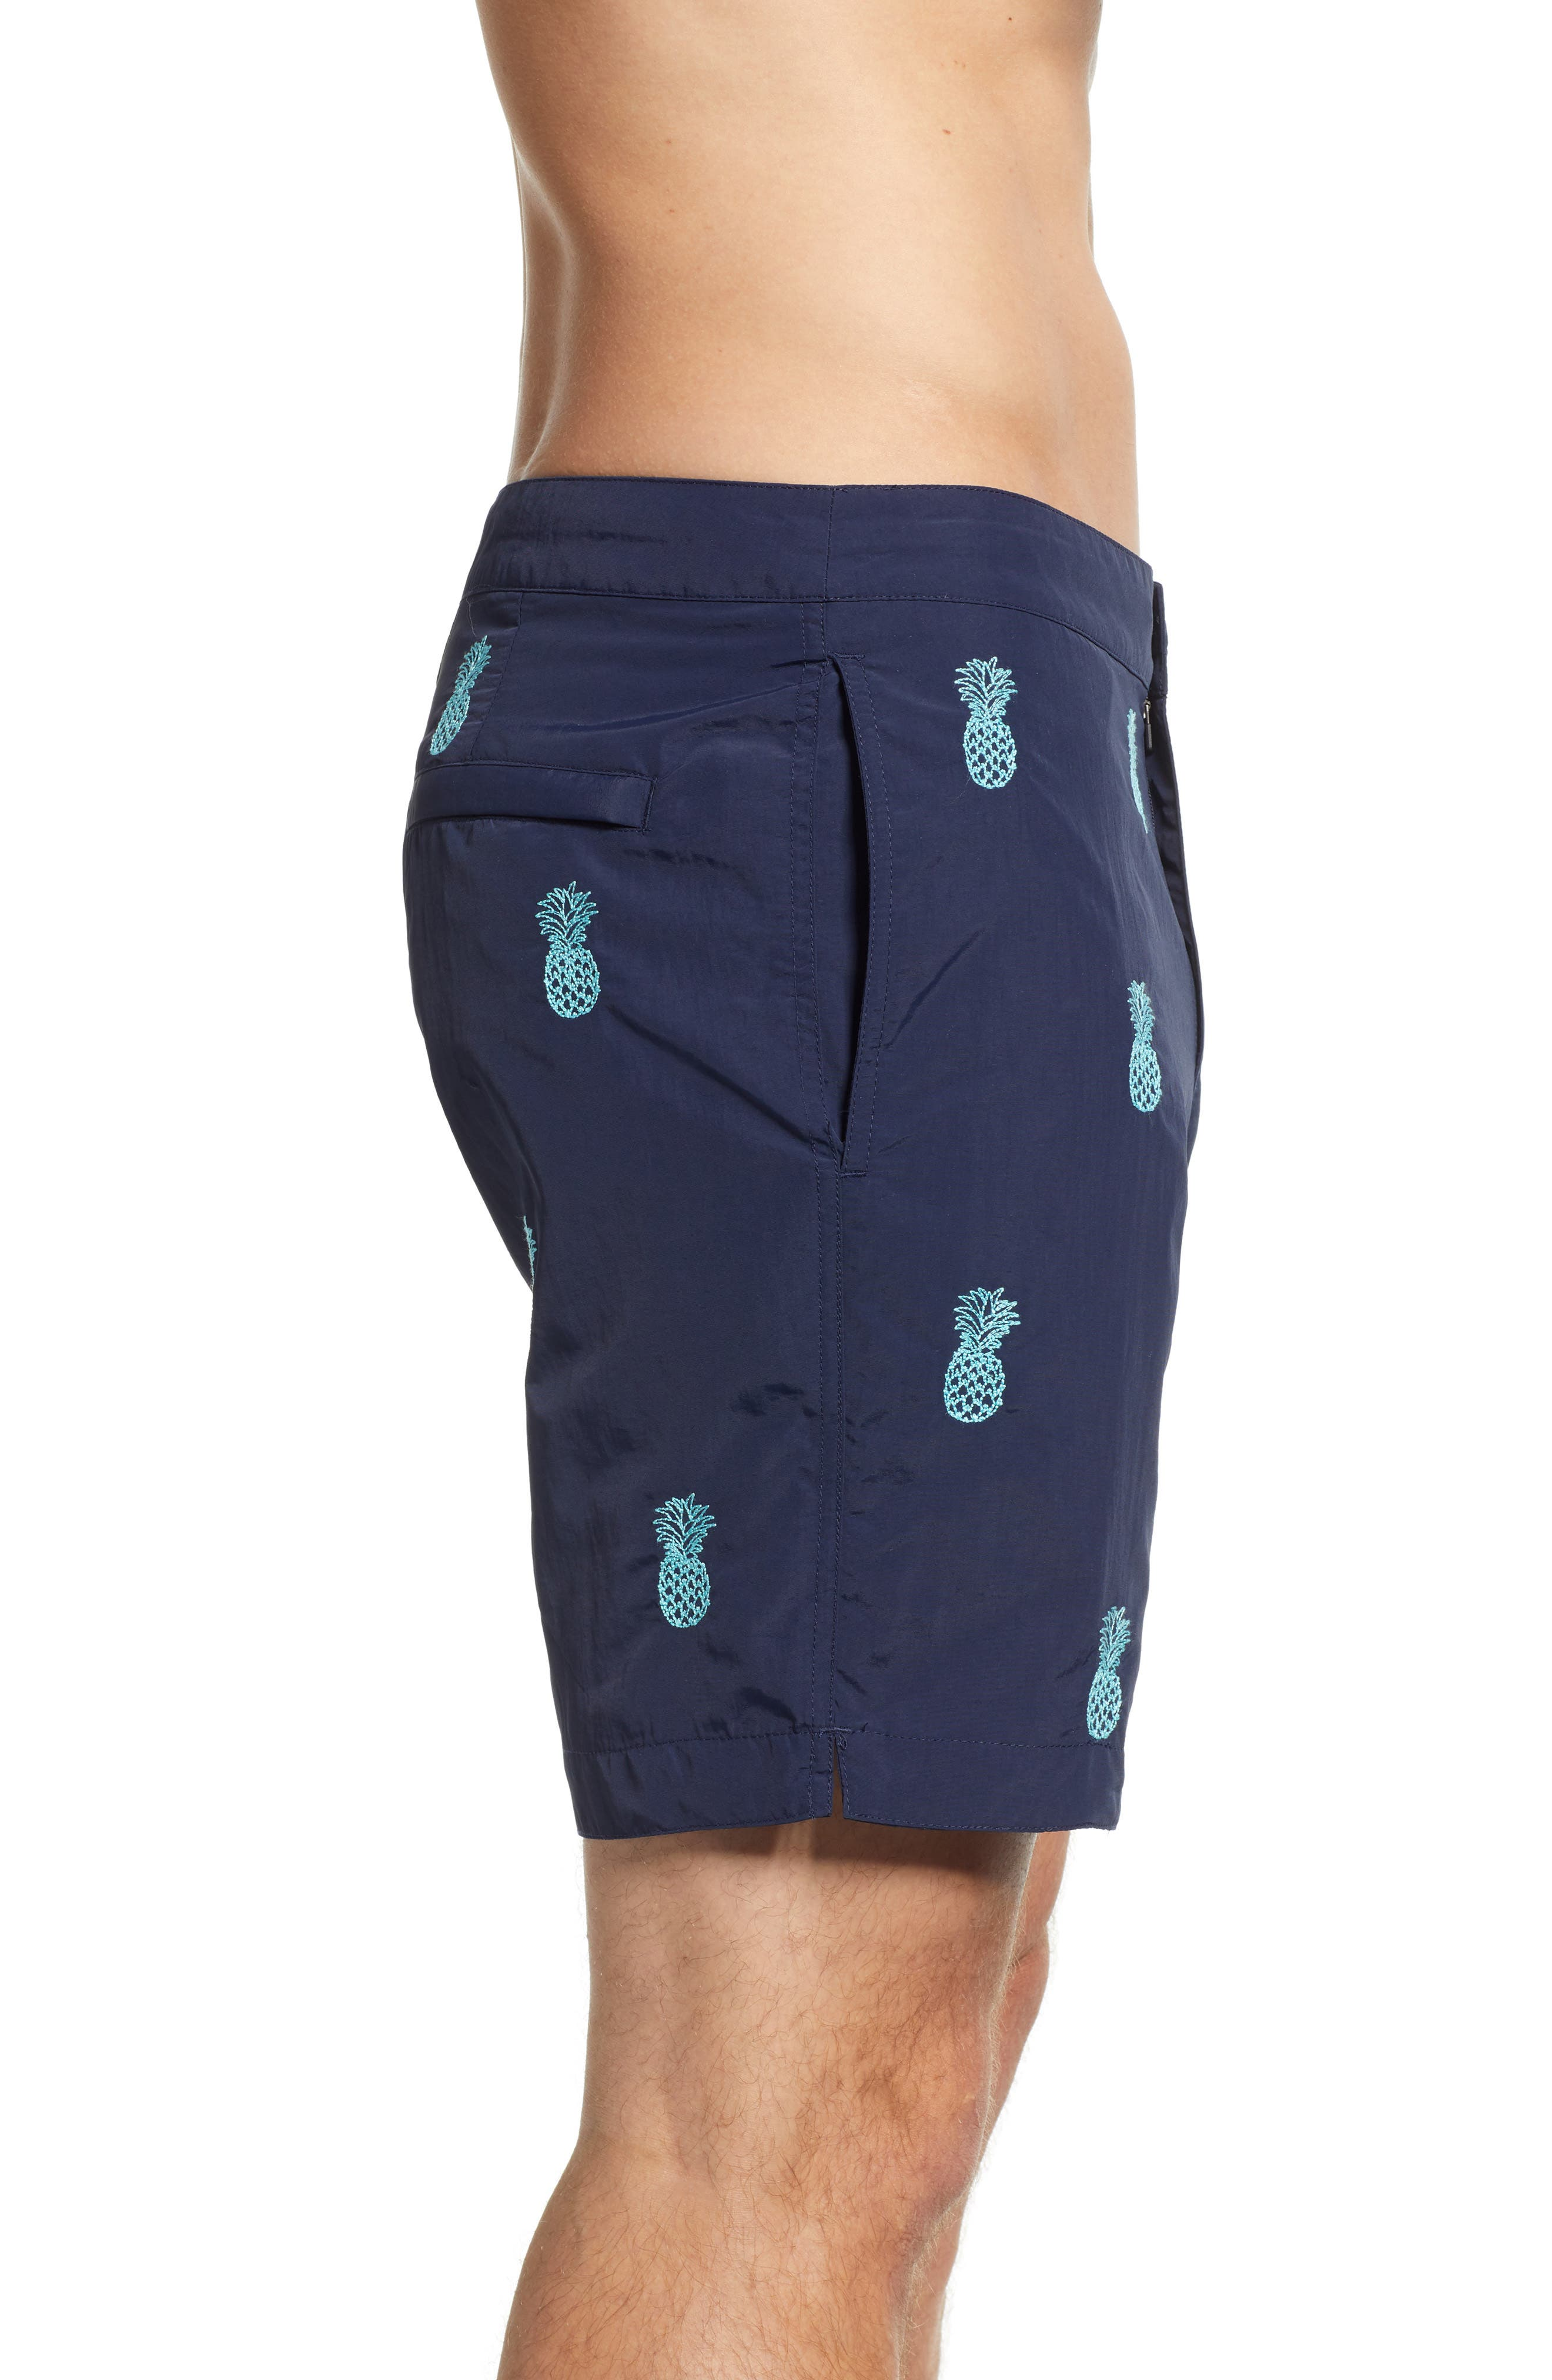 Aruba Embroidered 8.5 Inch Swim Trunks,                             Alternate thumbnail 3, color,                             NAVY EMBROIDERED PINEAPPLES